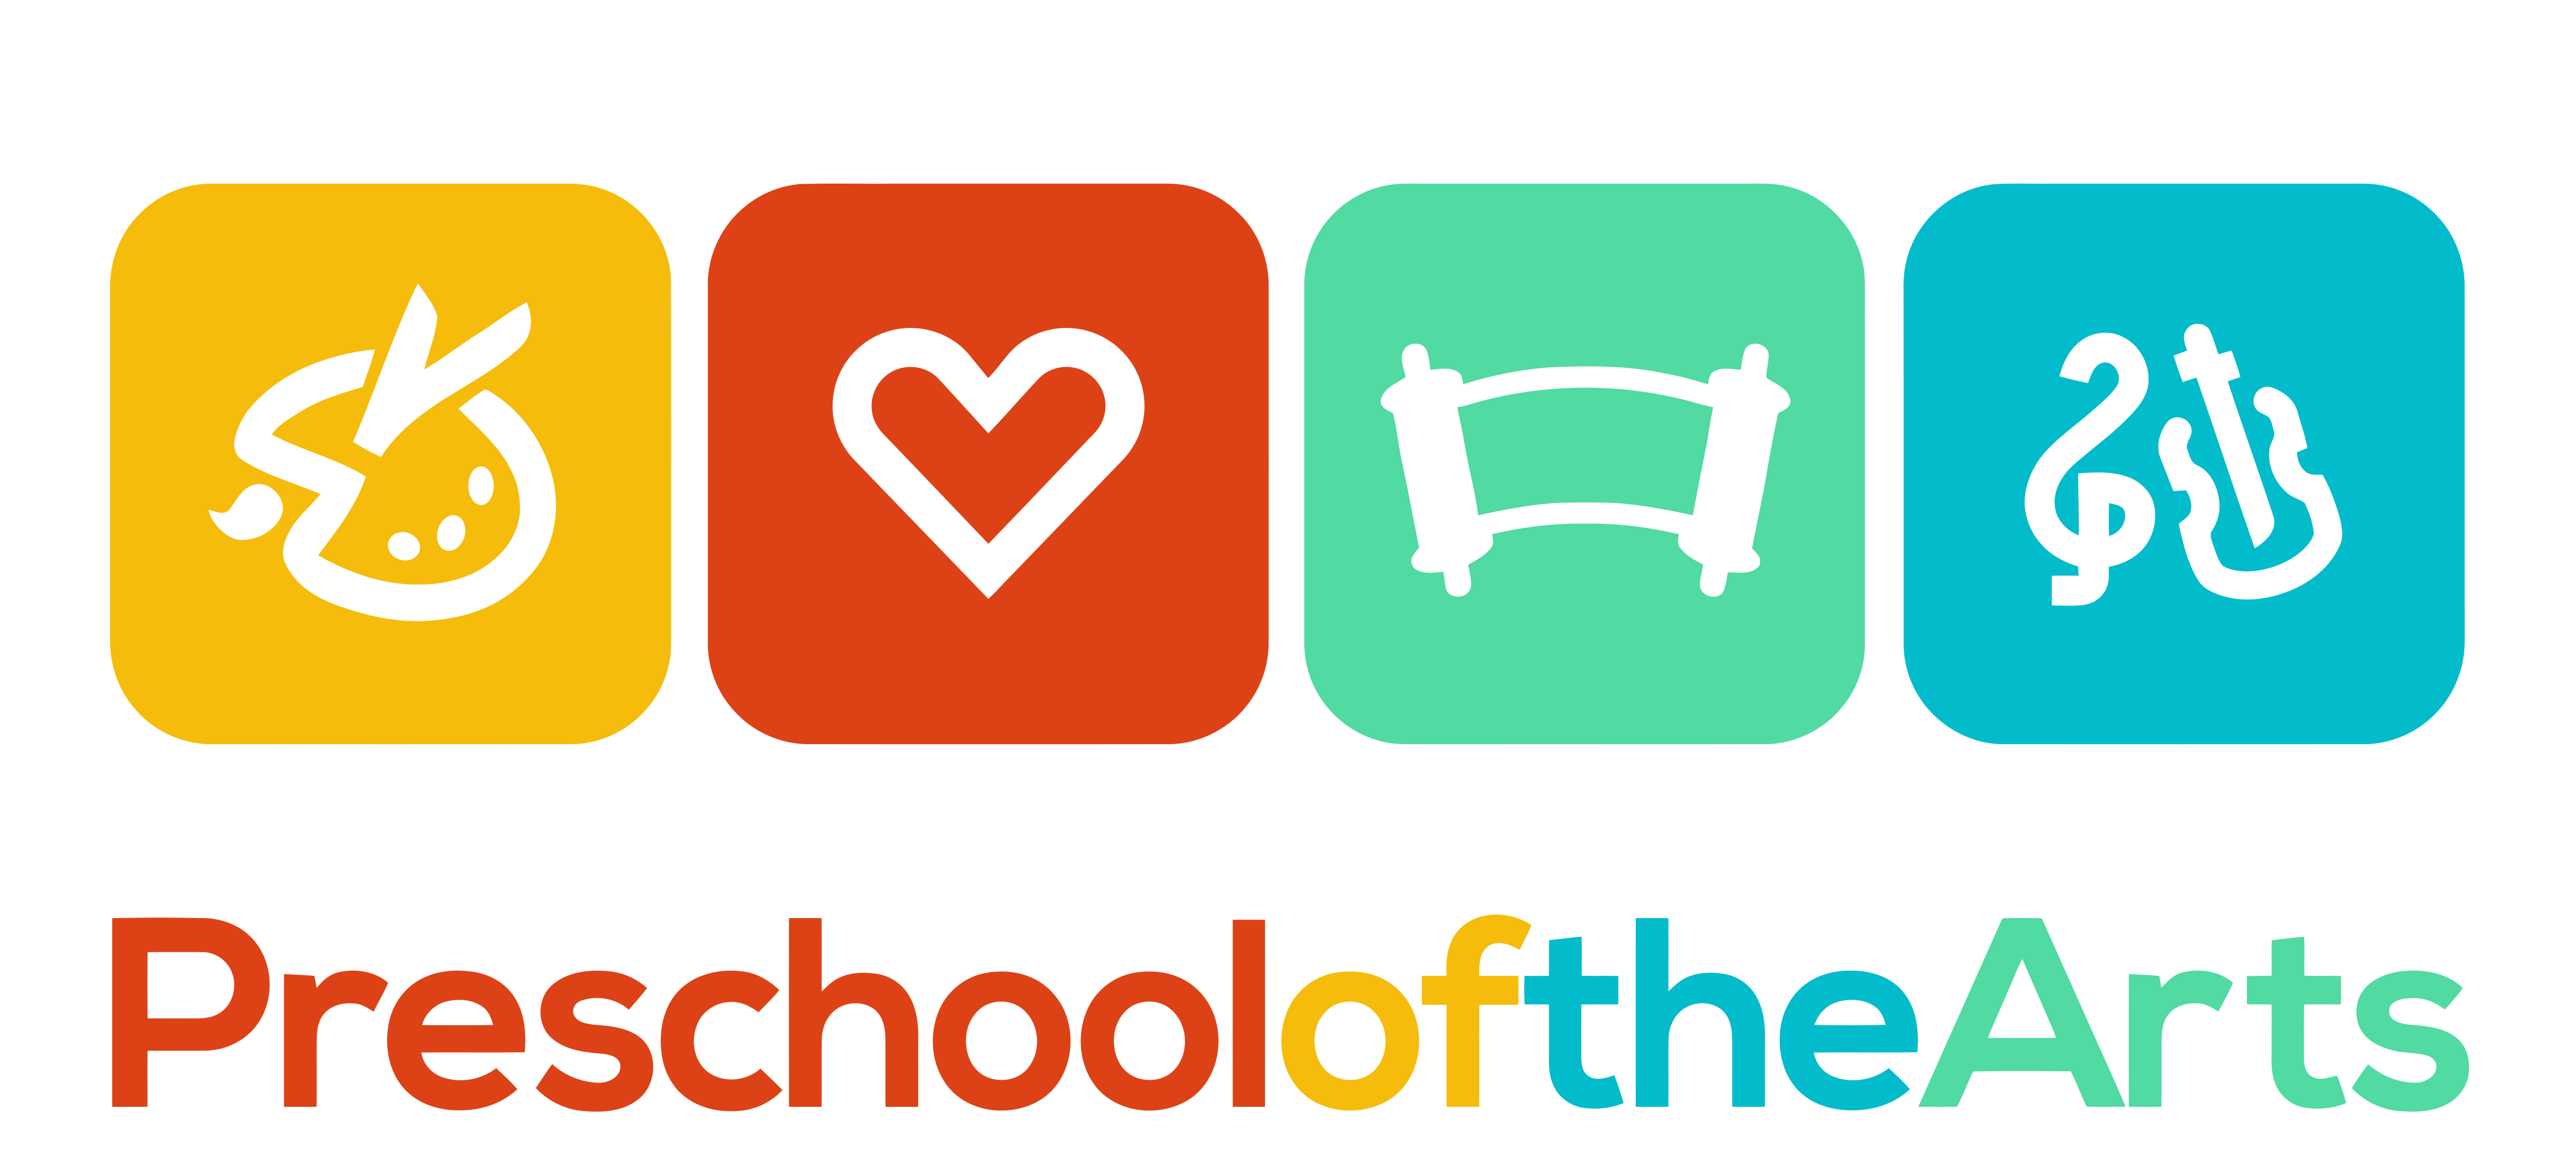 preschool-of-the-arts-done_vectorized-1